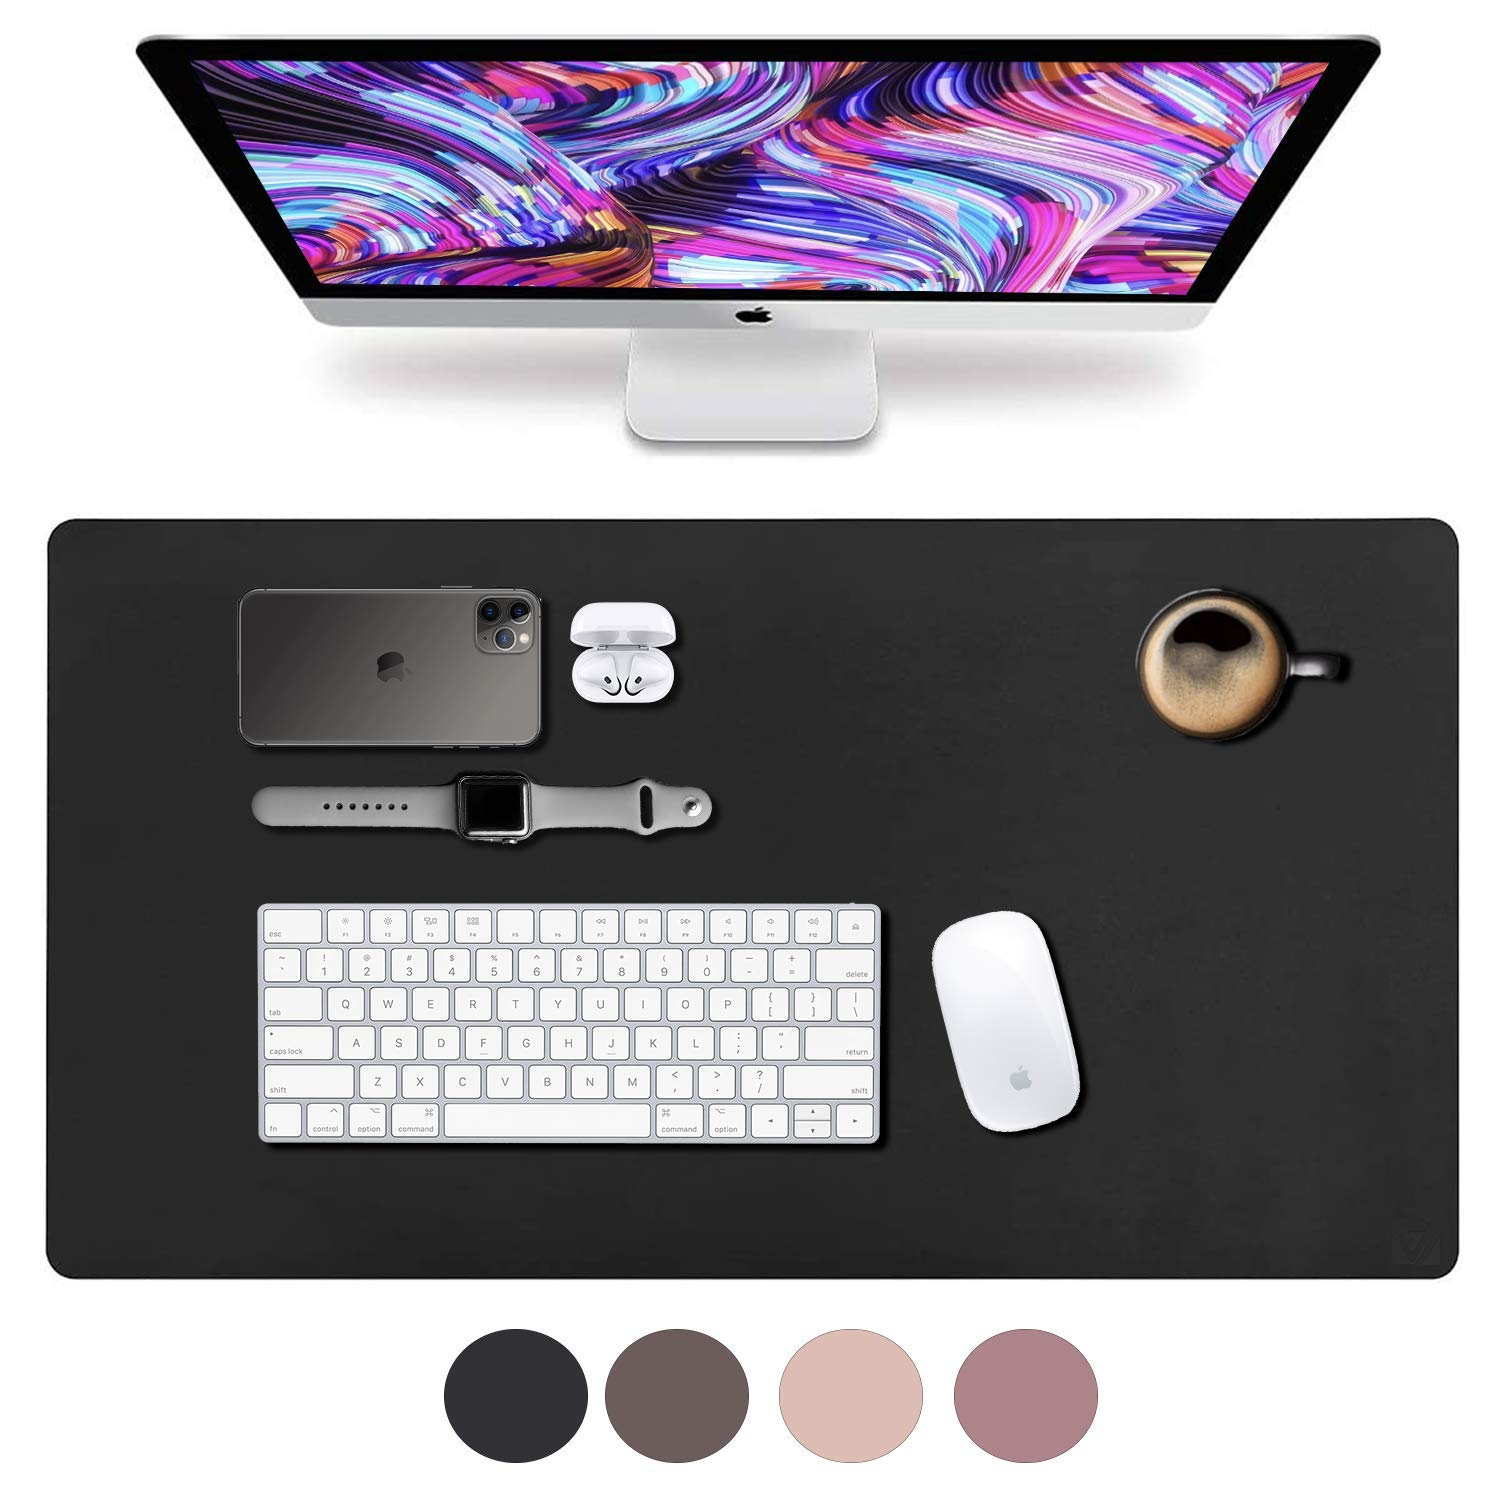 """Leather Desk Pad 31.5"""" x 15.7"""", Vine Creations Office Desk Mat Waterproof Black, Smooth Mouse Pad and Writing Surface, Top of Desks Protector, Dual-Sided Pu Leather Blotter Accessories Office Decor"""